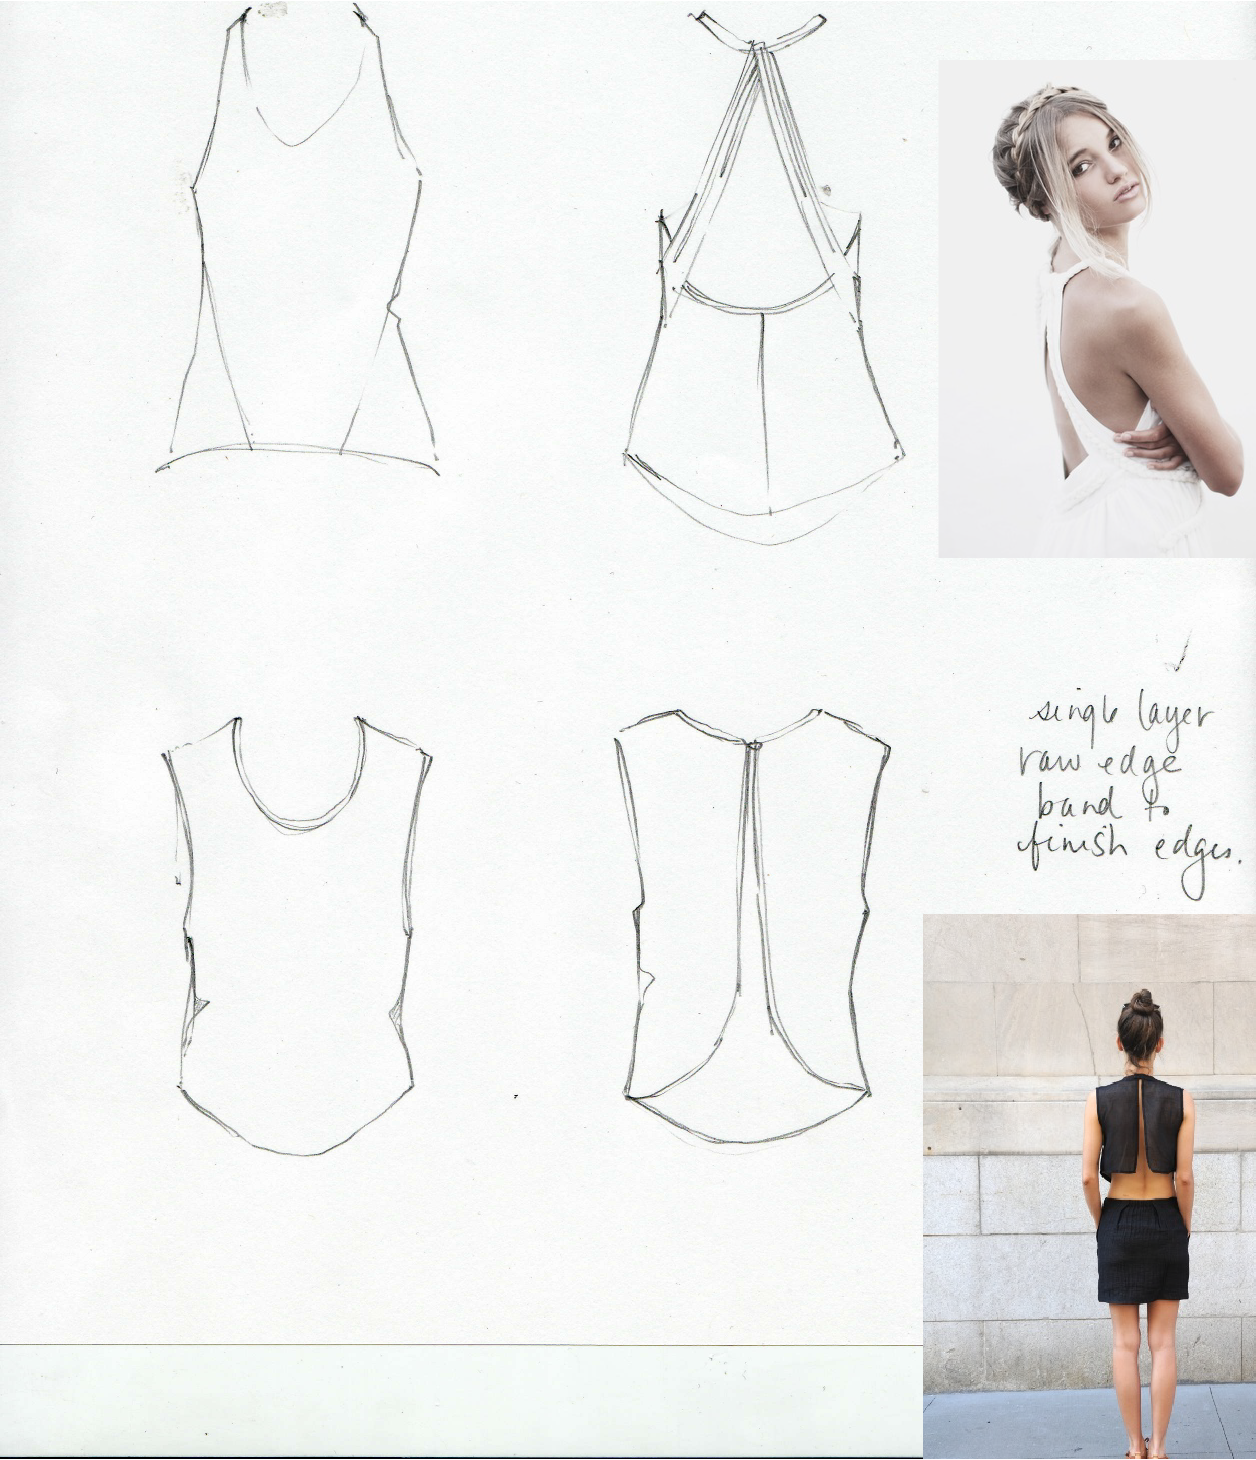 kate lab project_sketches-04.png